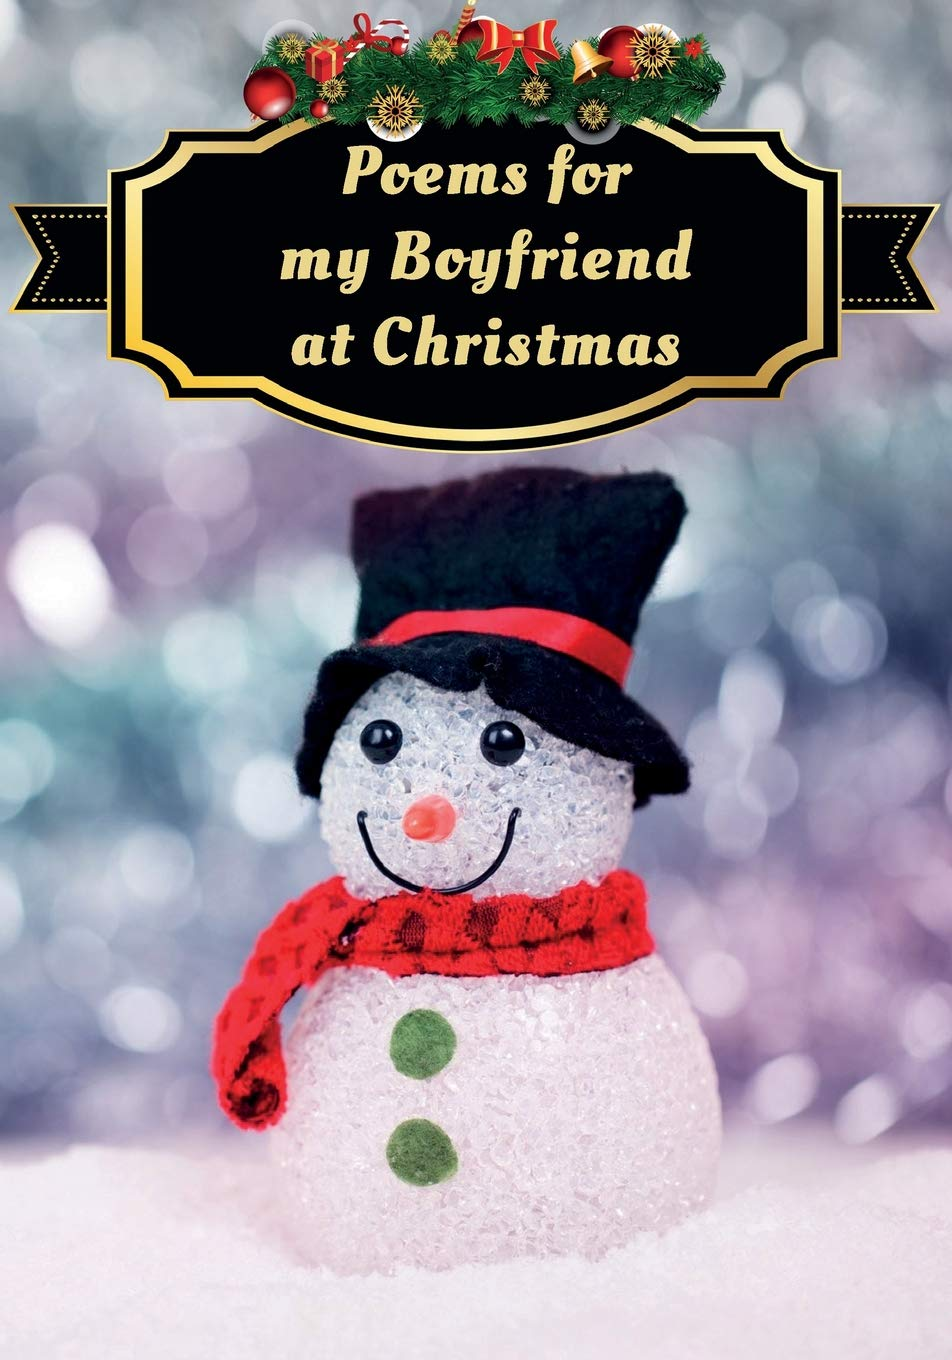 buy poems for my boyfriend at christmas poetry written for someone special by you with a little help from us book online at low prices in india poems